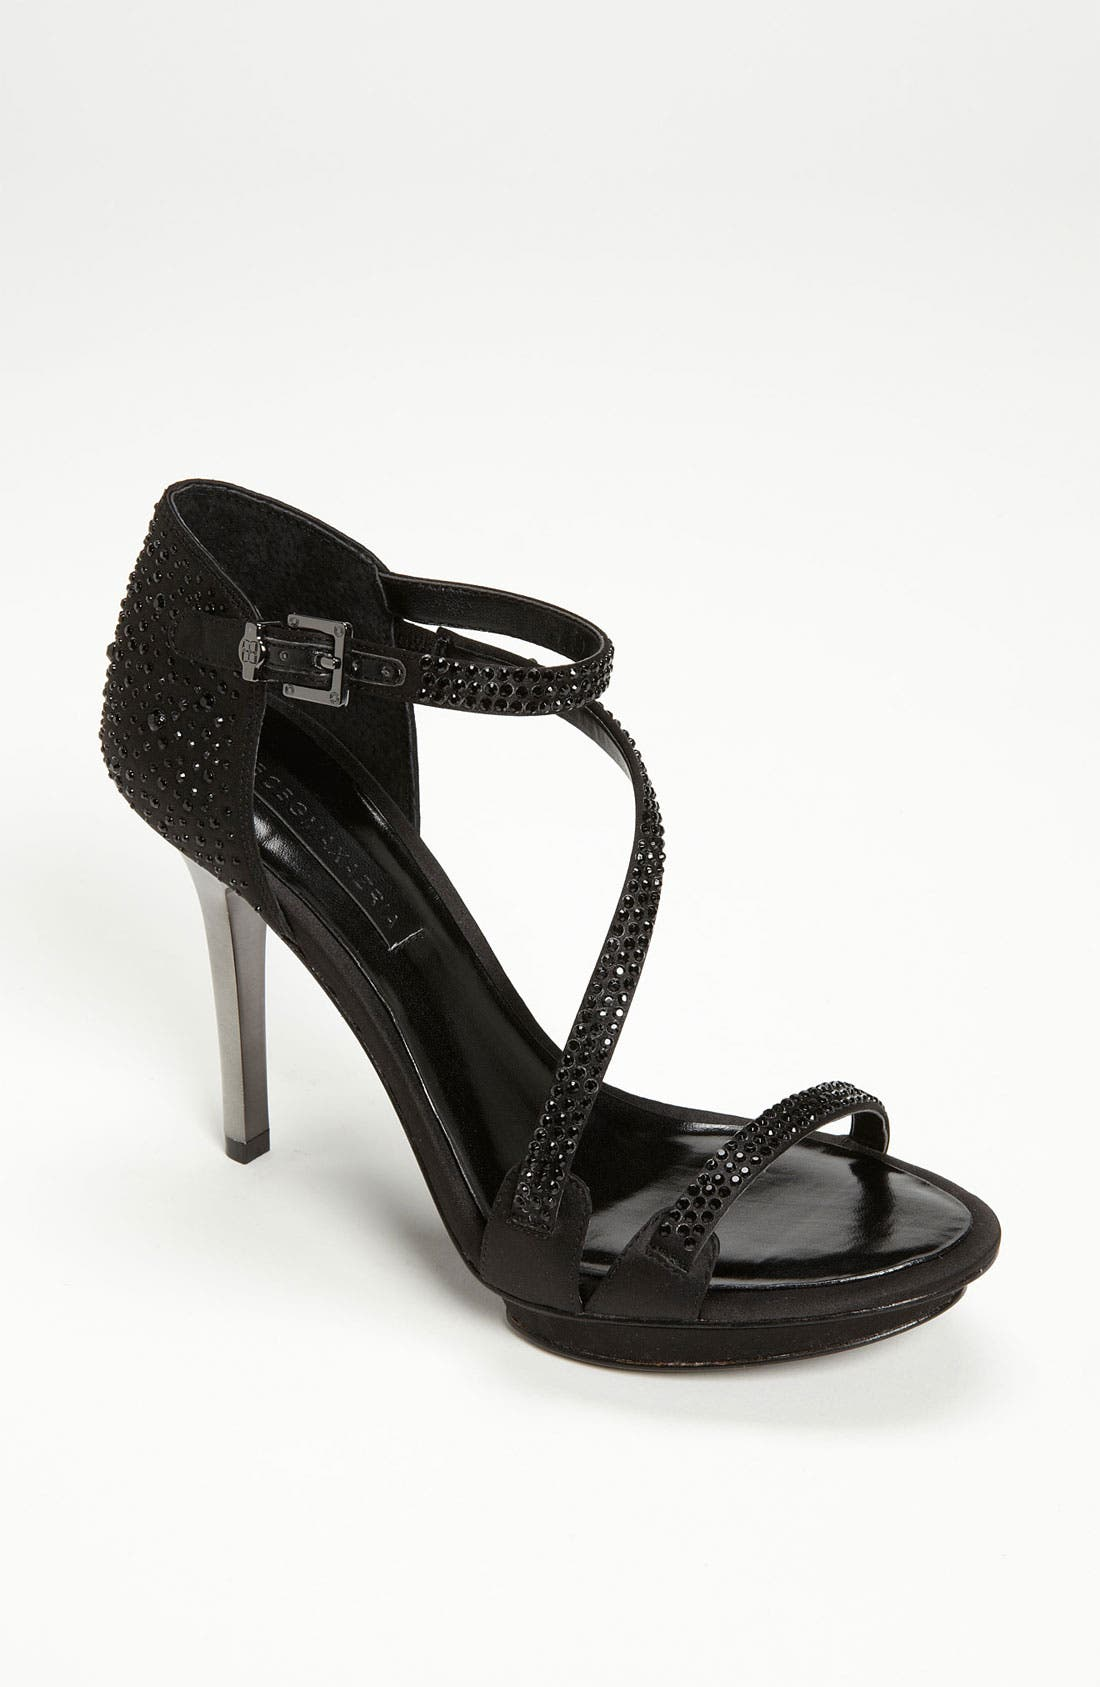 Alternate Image 1 Selected - BCBGMAXAZRIA 'Peeking' Sandal